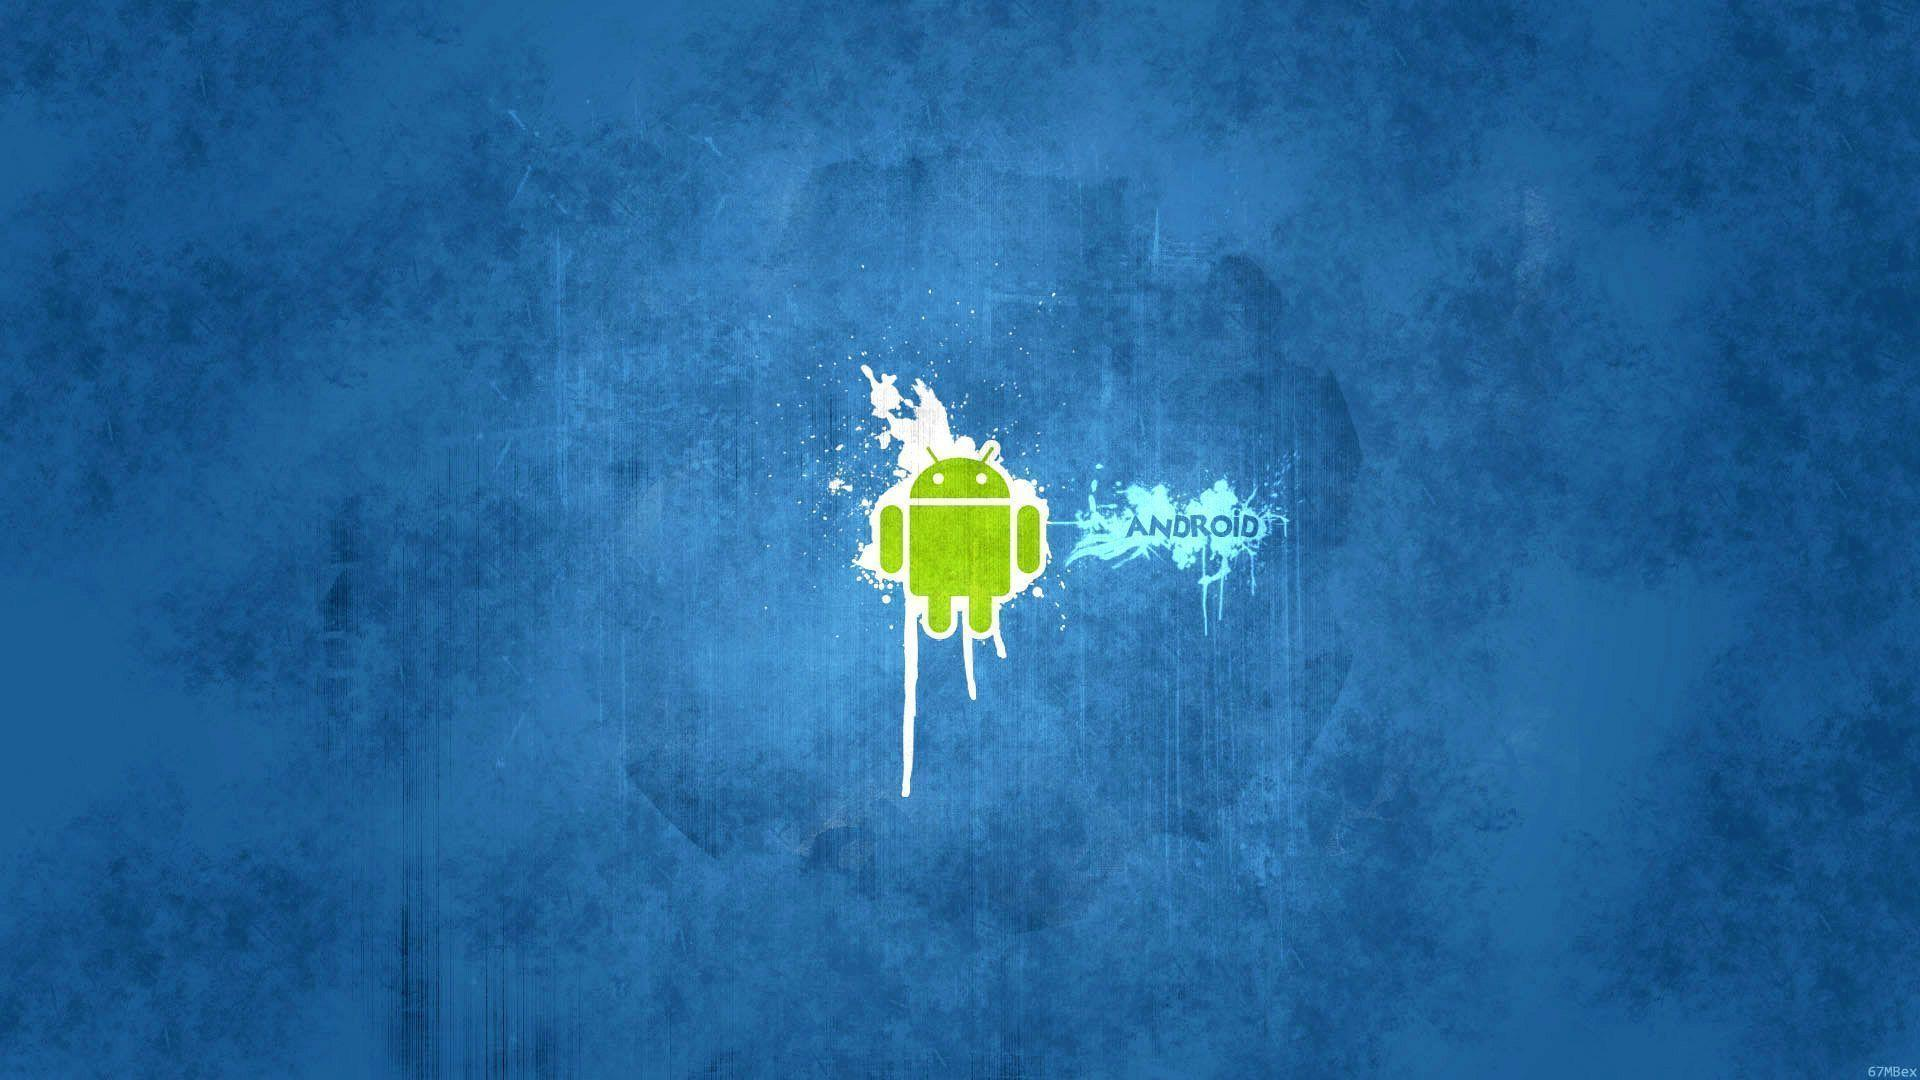 Android Wallpapers Blue HD Backgrounds